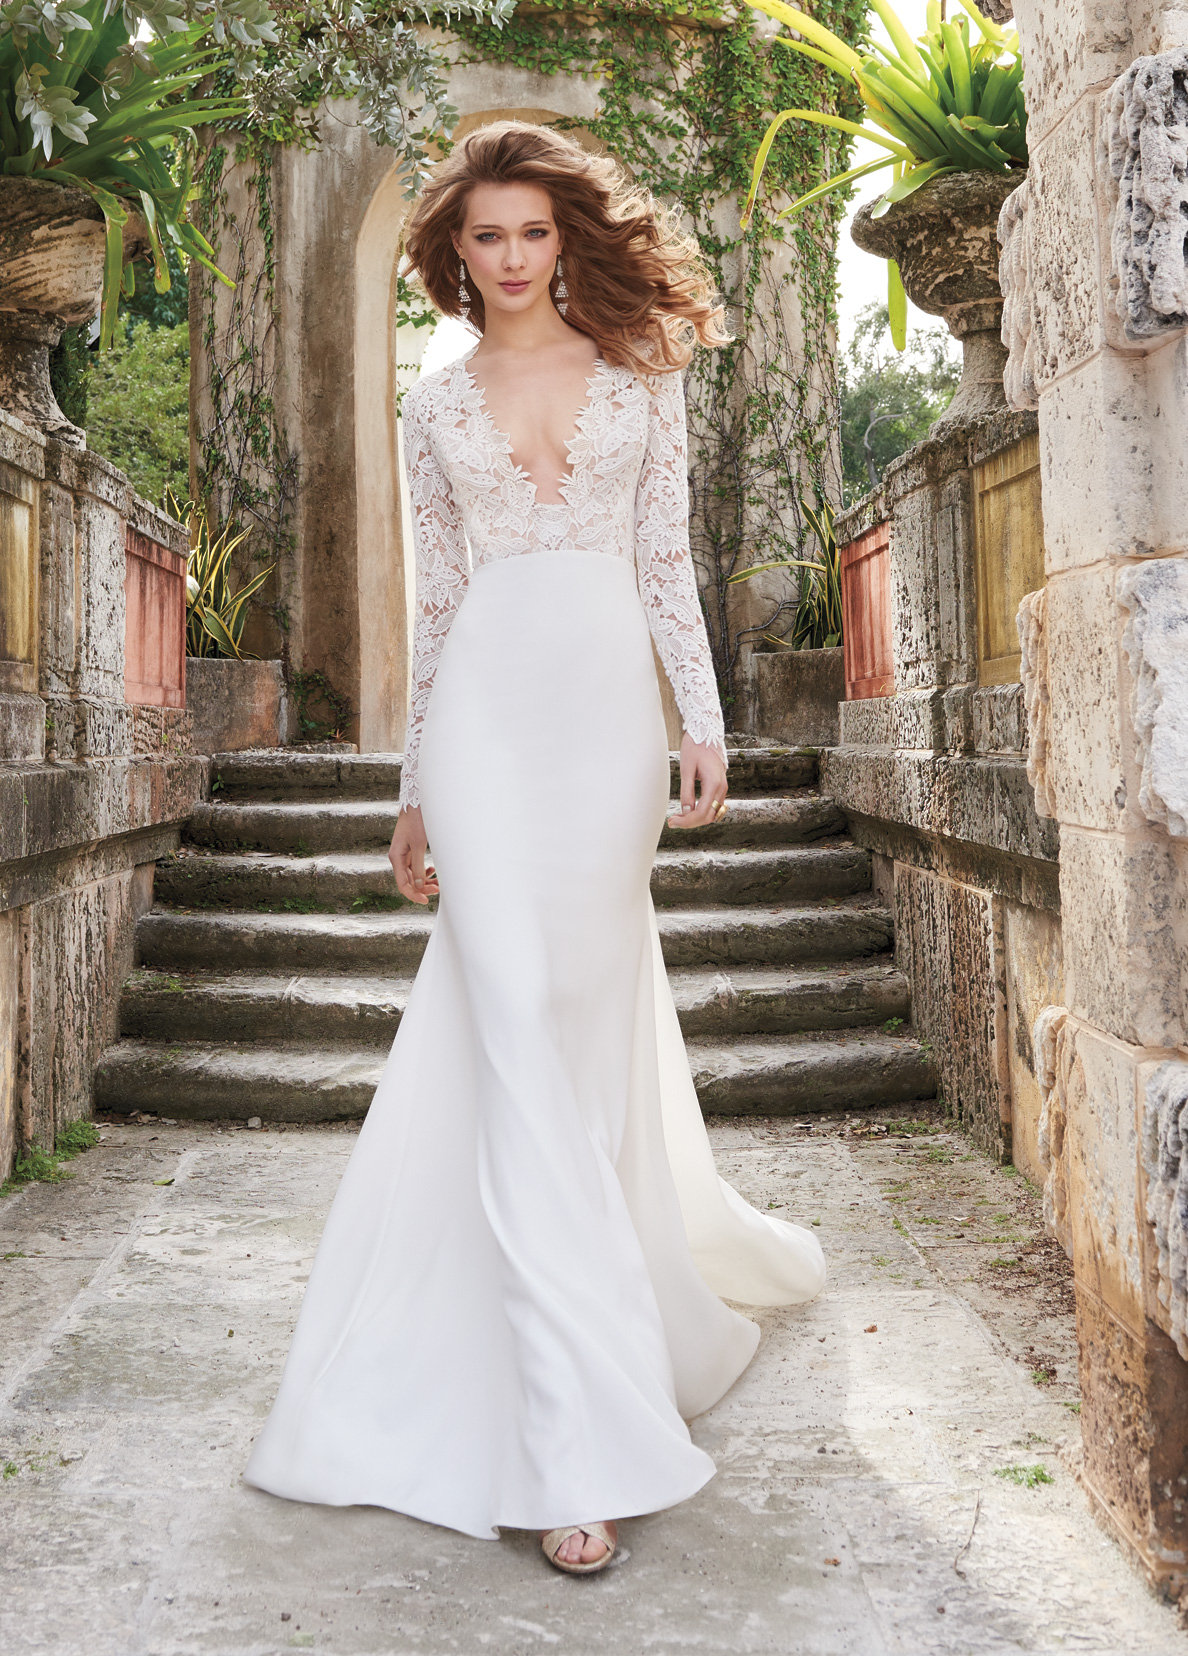 Fall 2014 >: S Lace Long Wedding Dresses At Reisefeber.org